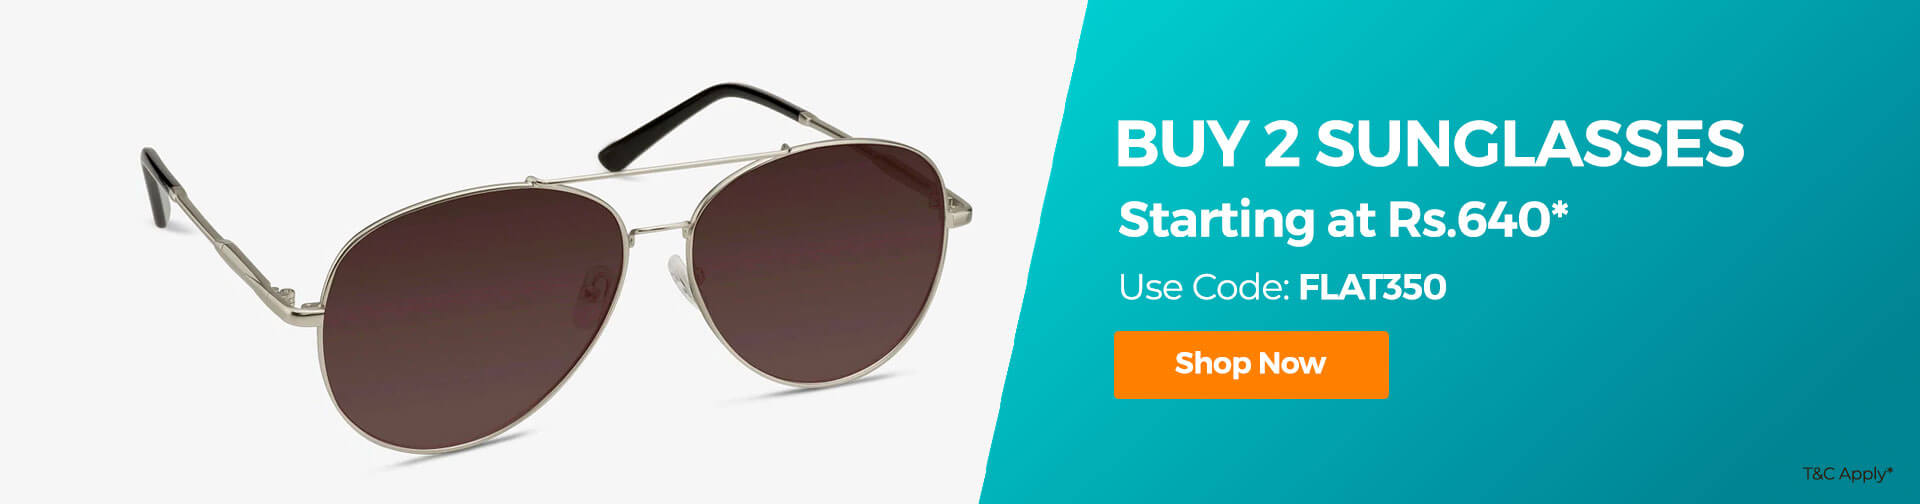 Buy 2 Sunglasses starting at 699 Use code FLAT350 and get upto 100Rs Cashback